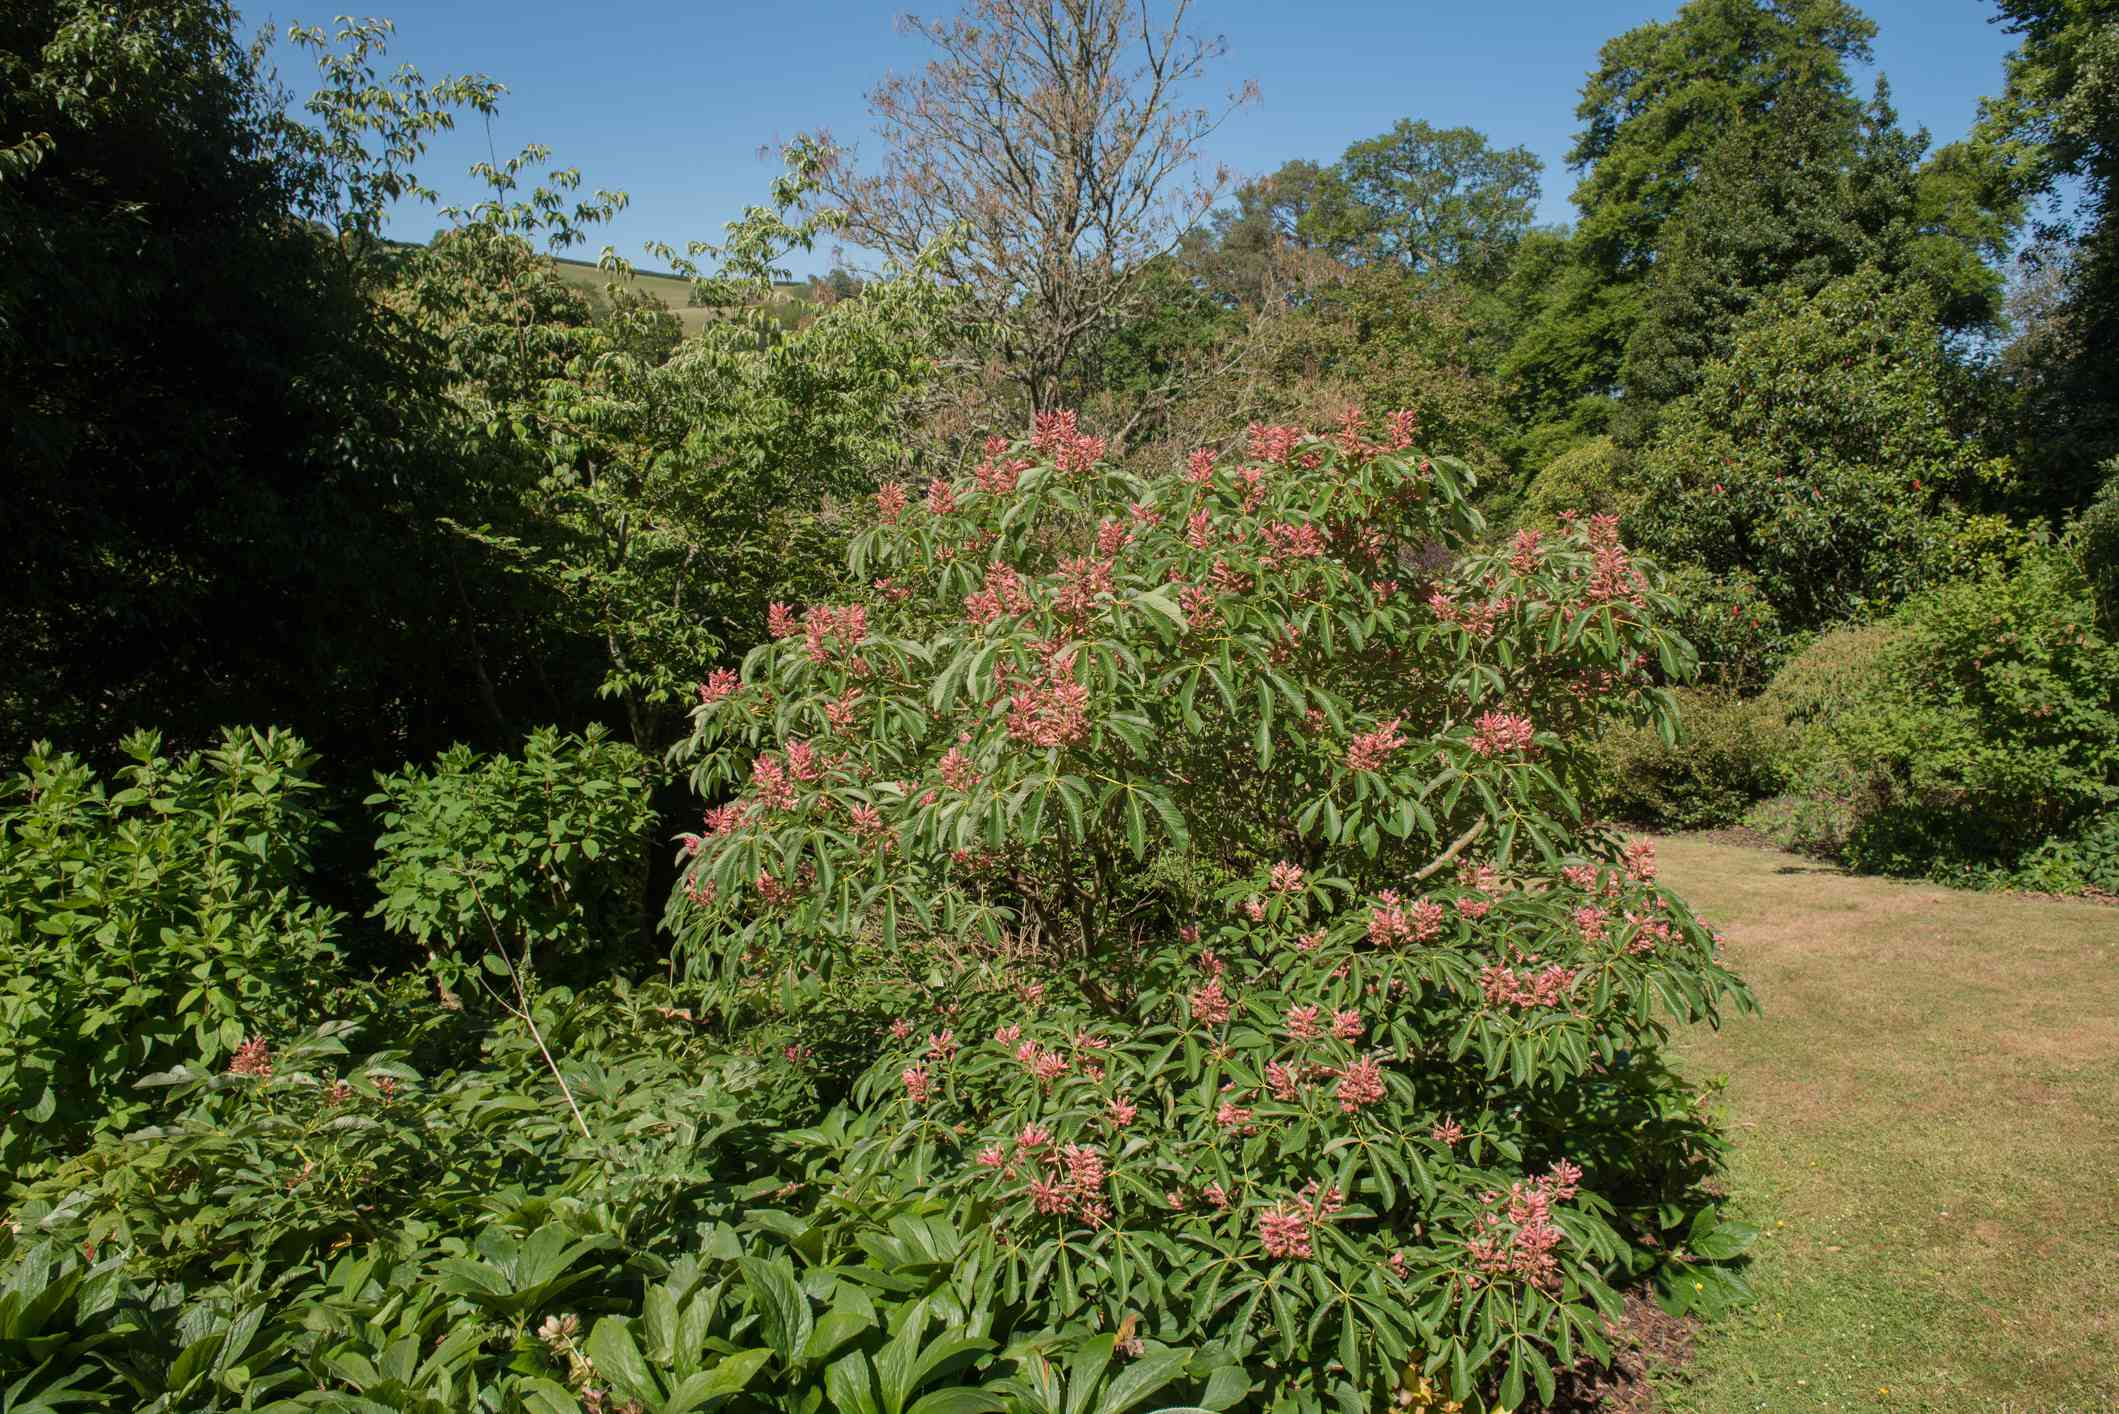 Summer Foliage and Flowers of a Deciduous Red Buckeye Shrub (Aesculus pavia 'Rosea nana') Growing in a Garden in Rural Devon, England, UK